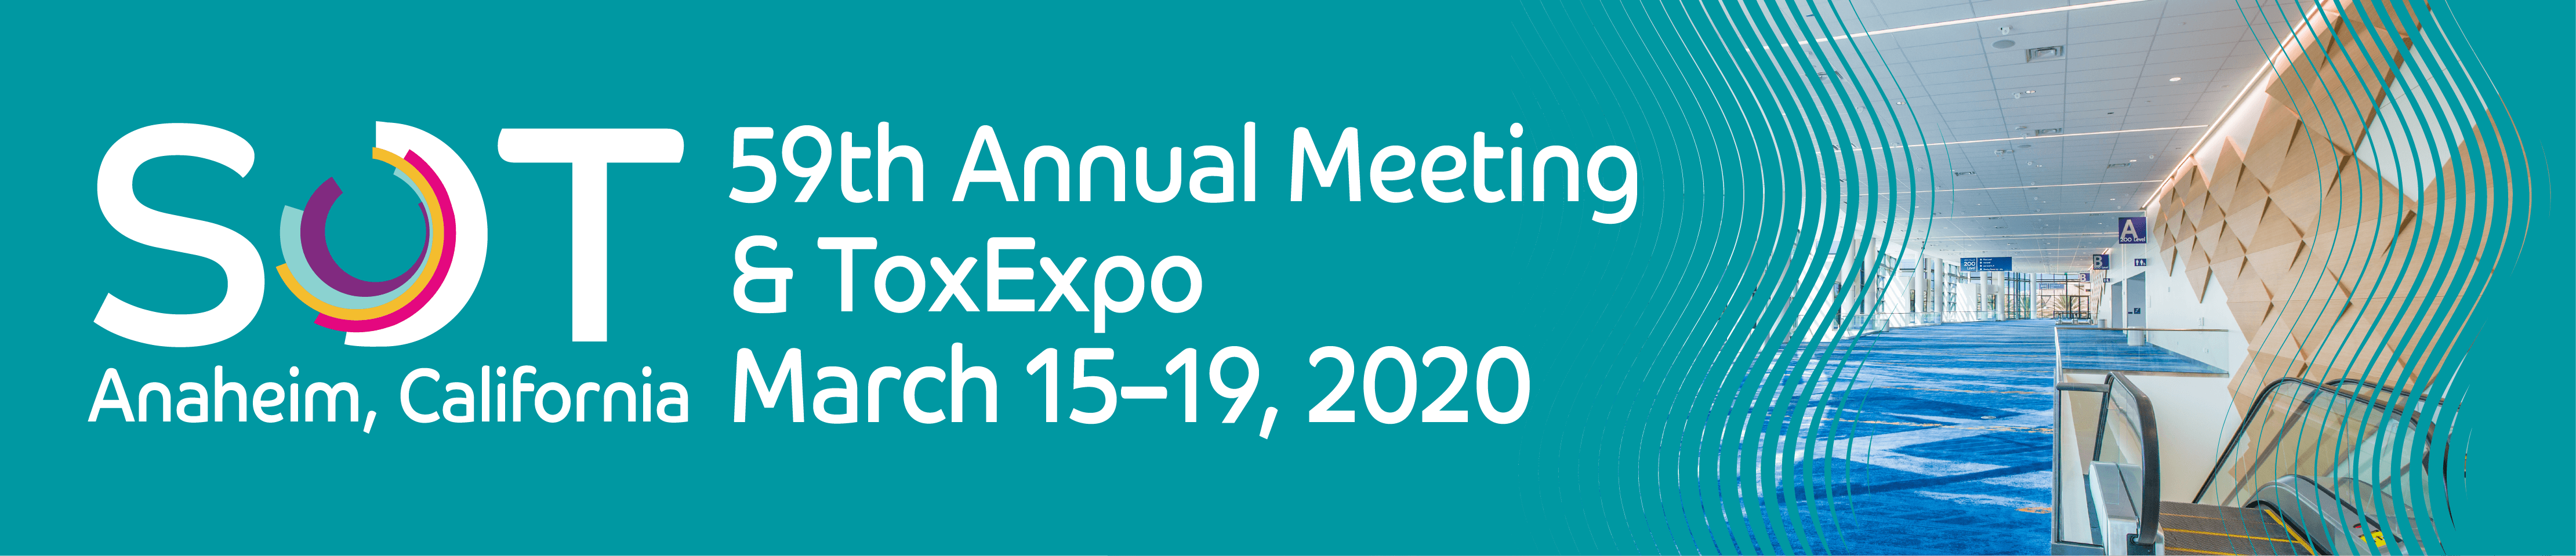 Anaheim 2020 SOT Annual Meeting